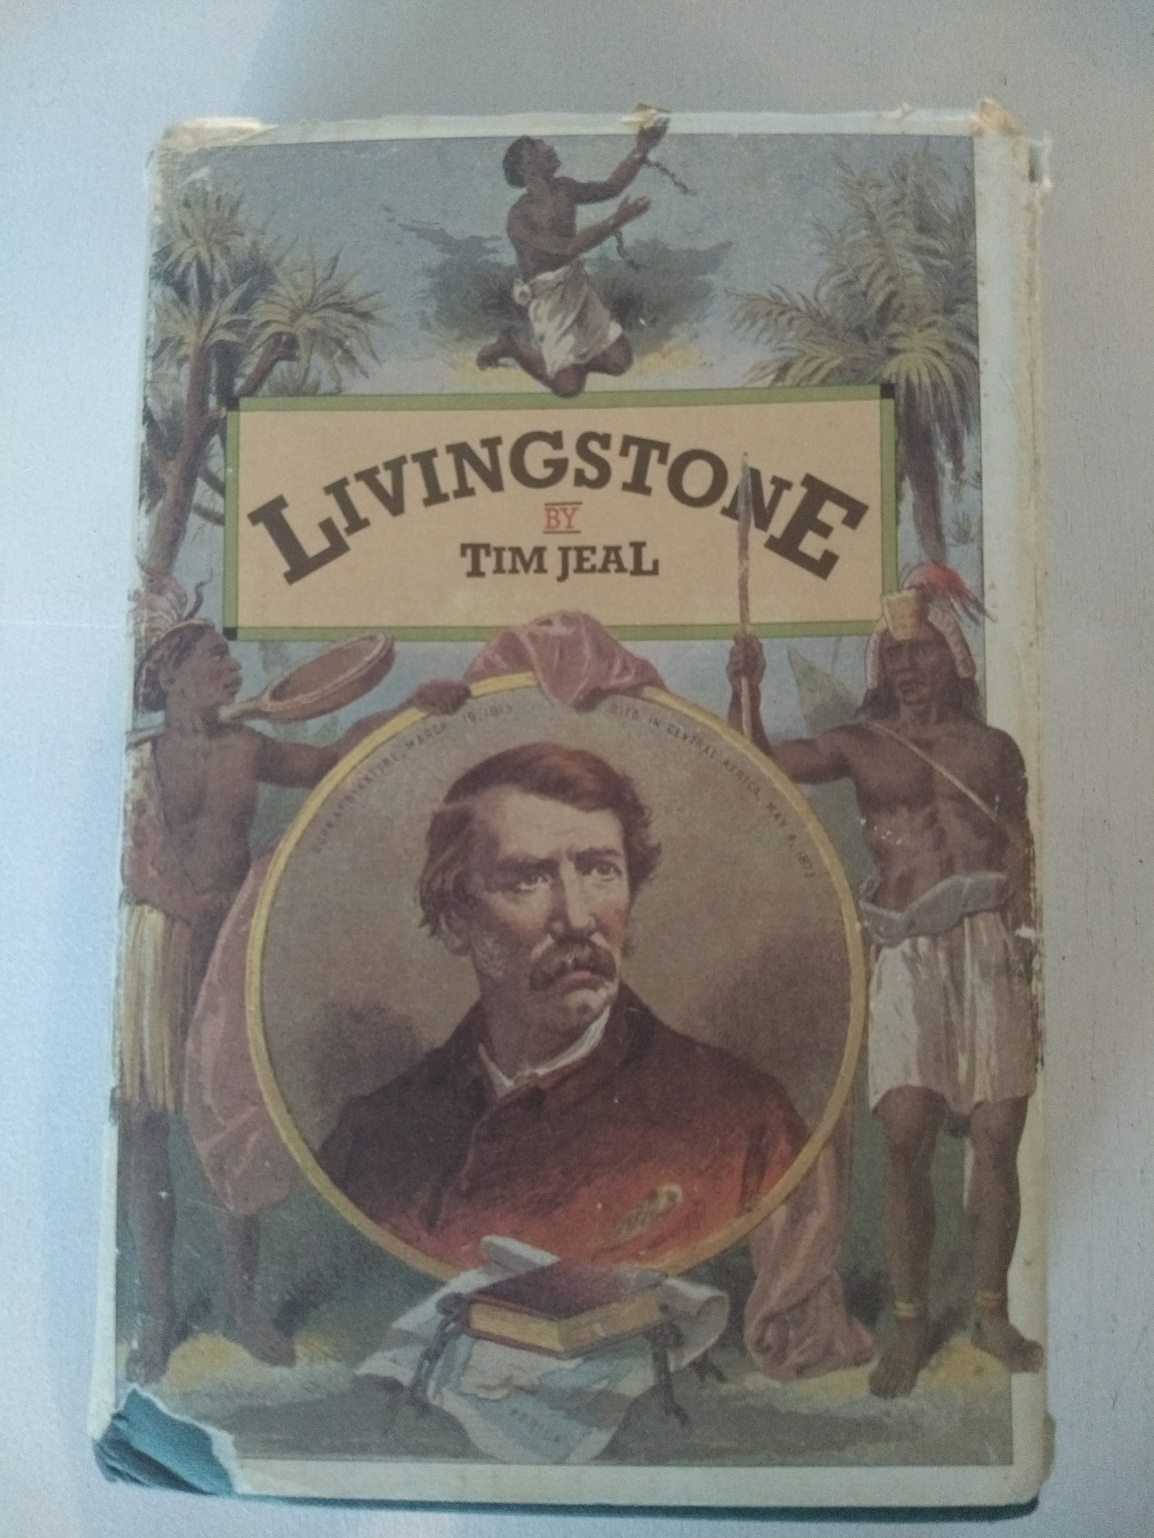 review LIVINGSTONE